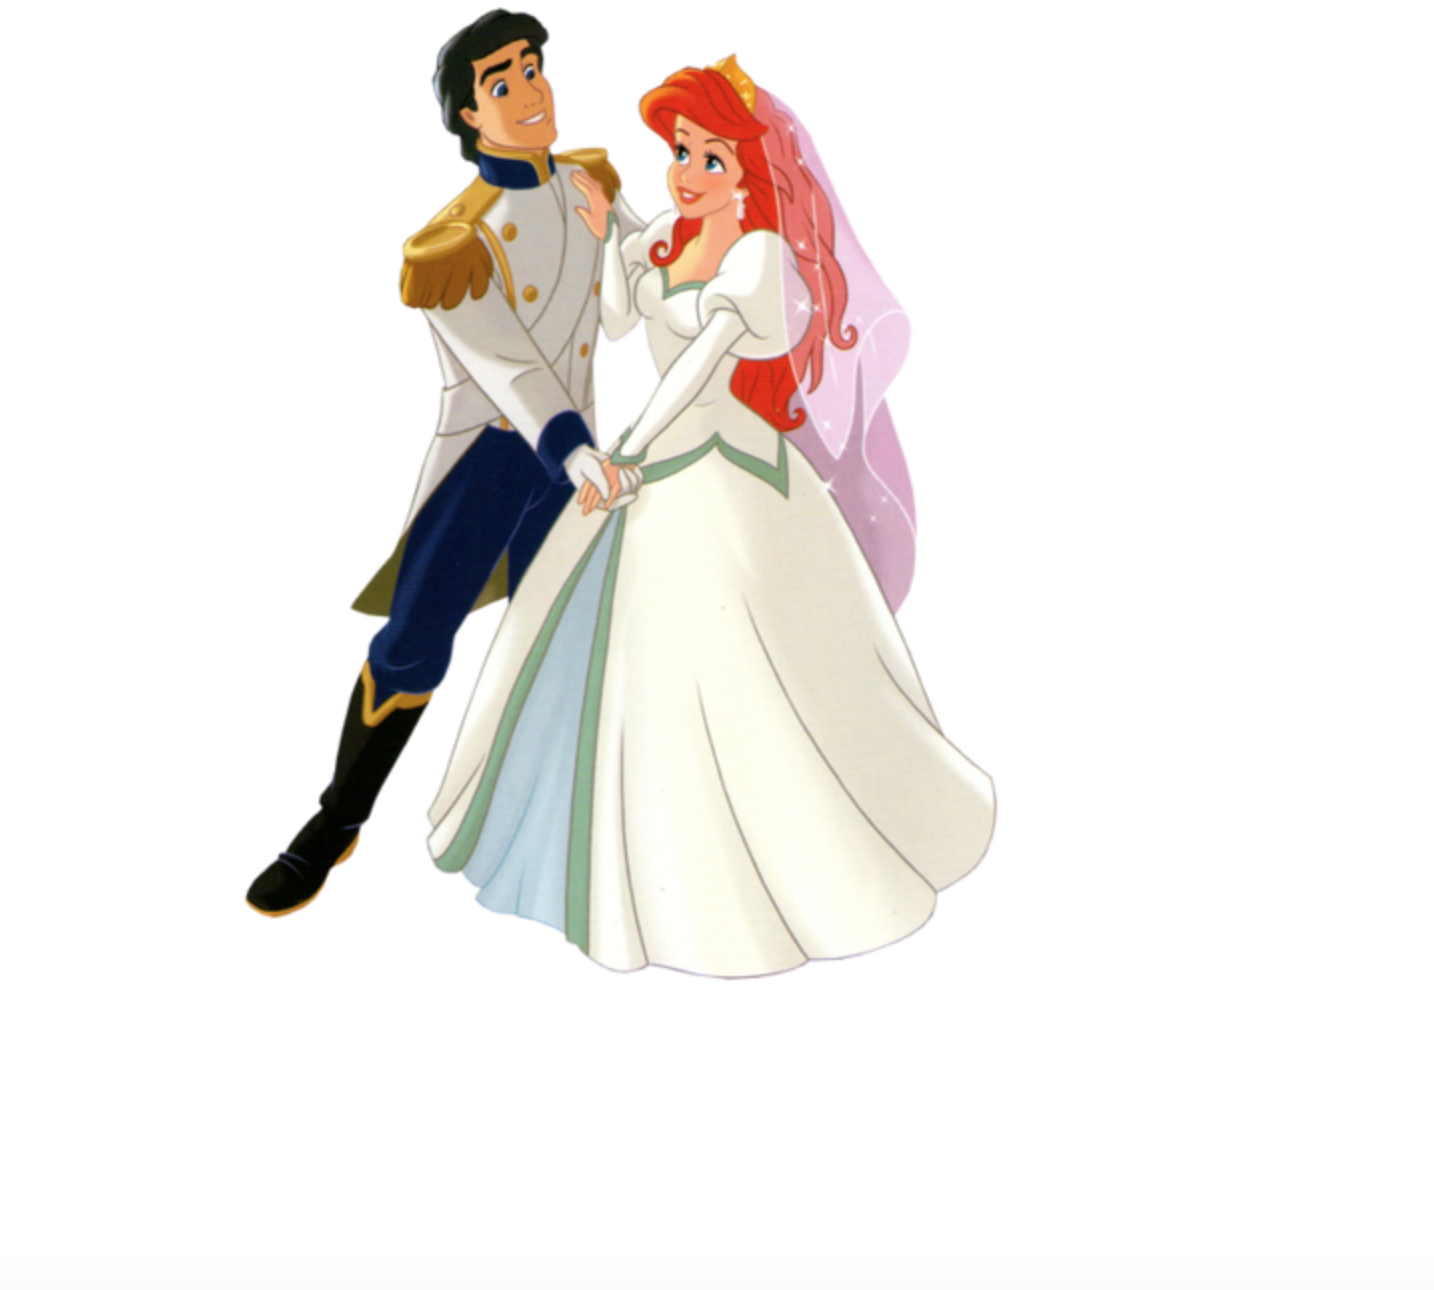 Ariel and Prince Eric on their Wedding Day Ariel and Prince Eric